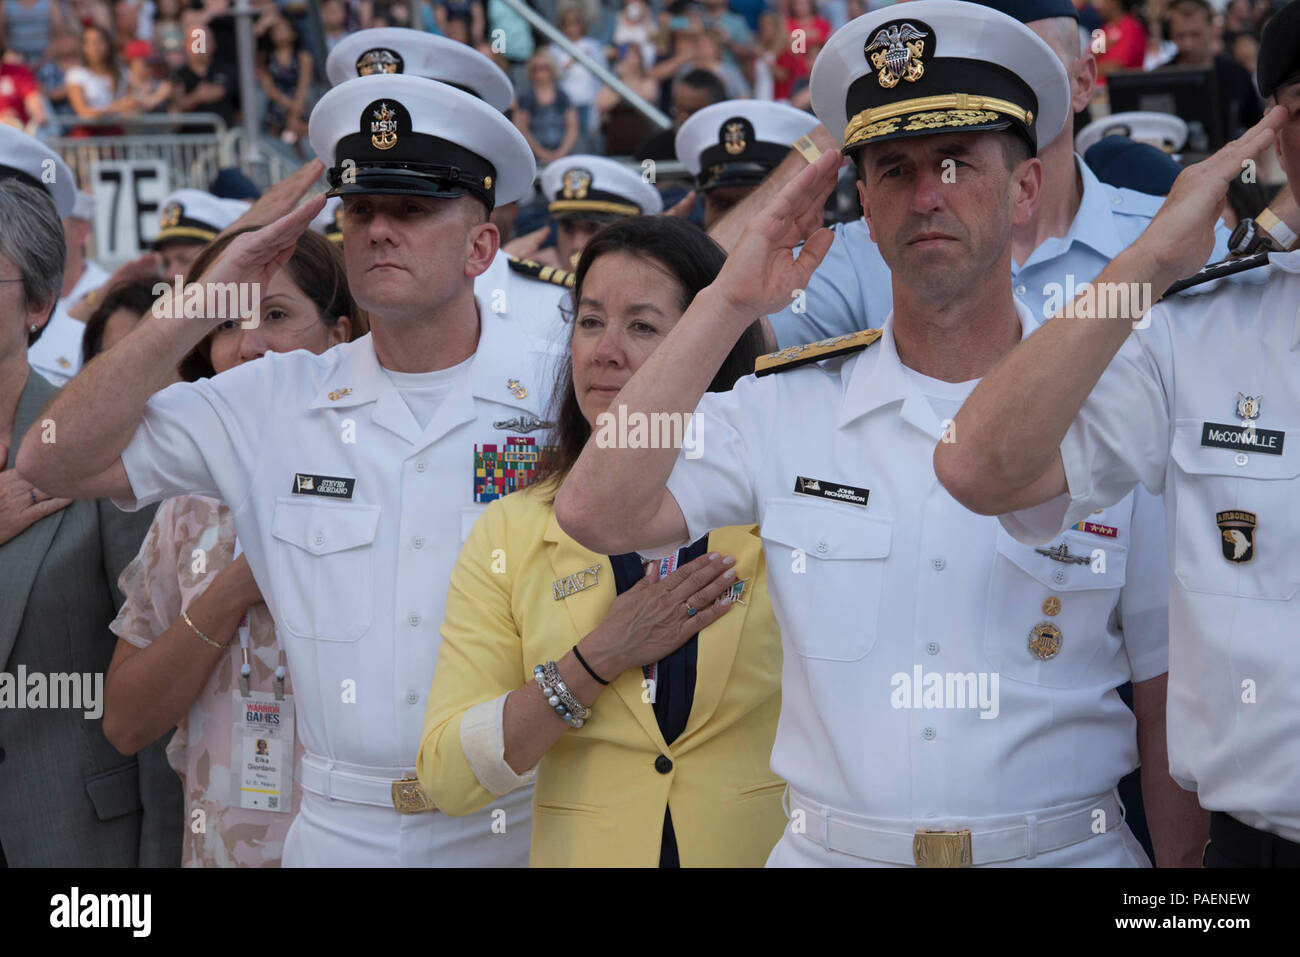 (July 1, 2017) Chief of Naval Operations Adm. John Richardson, Master Chief Petty Officer of the Navy (MCPON) Steven Giordano, and their spouses salute during the National Anthem at the Department of Defense (DoD) Warrior Games' opening ceremony at Soldier Field in Chicago. The Warrior Games run until July 8. The athletes will test their abilities in seven adaptive sports: archery, cycling, track and field, shooting, sitting volleyball, swimming and wheelchair basketball. Team Navy is comprised of athletes from Navy Wounded Warrior - Safe Harbor, the Navy's sole organization for coordinating t - Stock Image